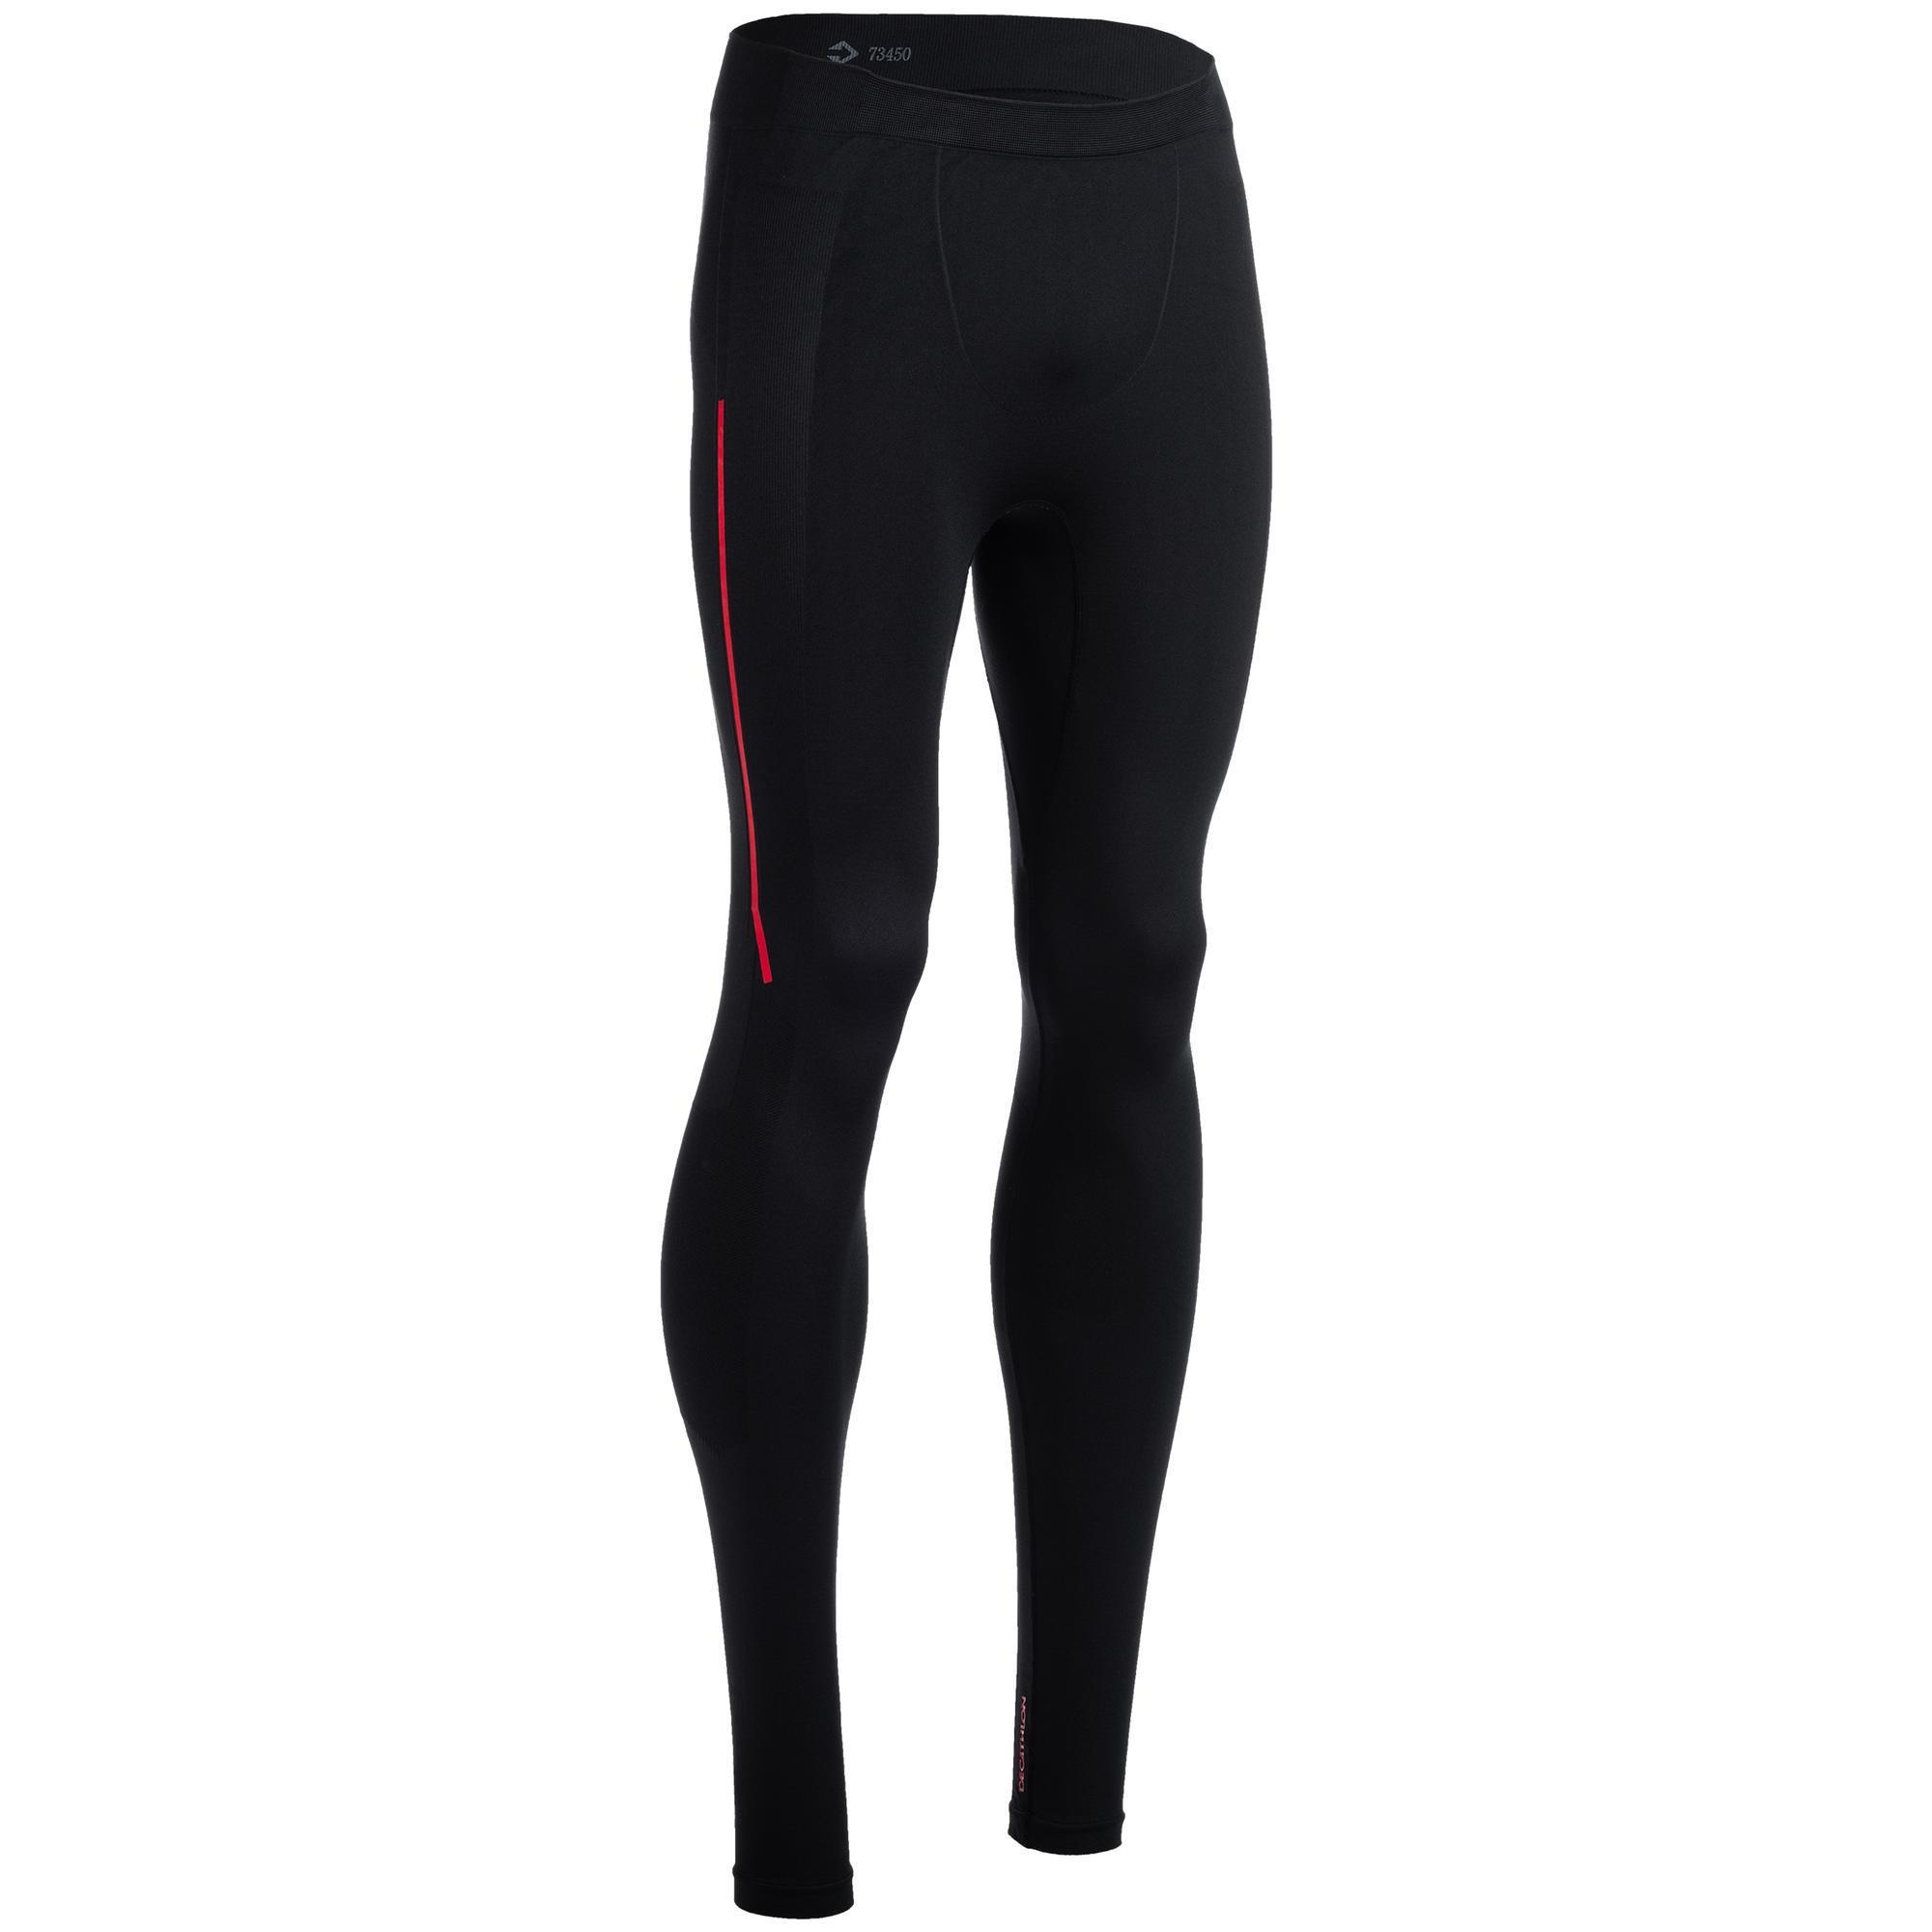 Domyos Crosstraining legging 500 voor heren